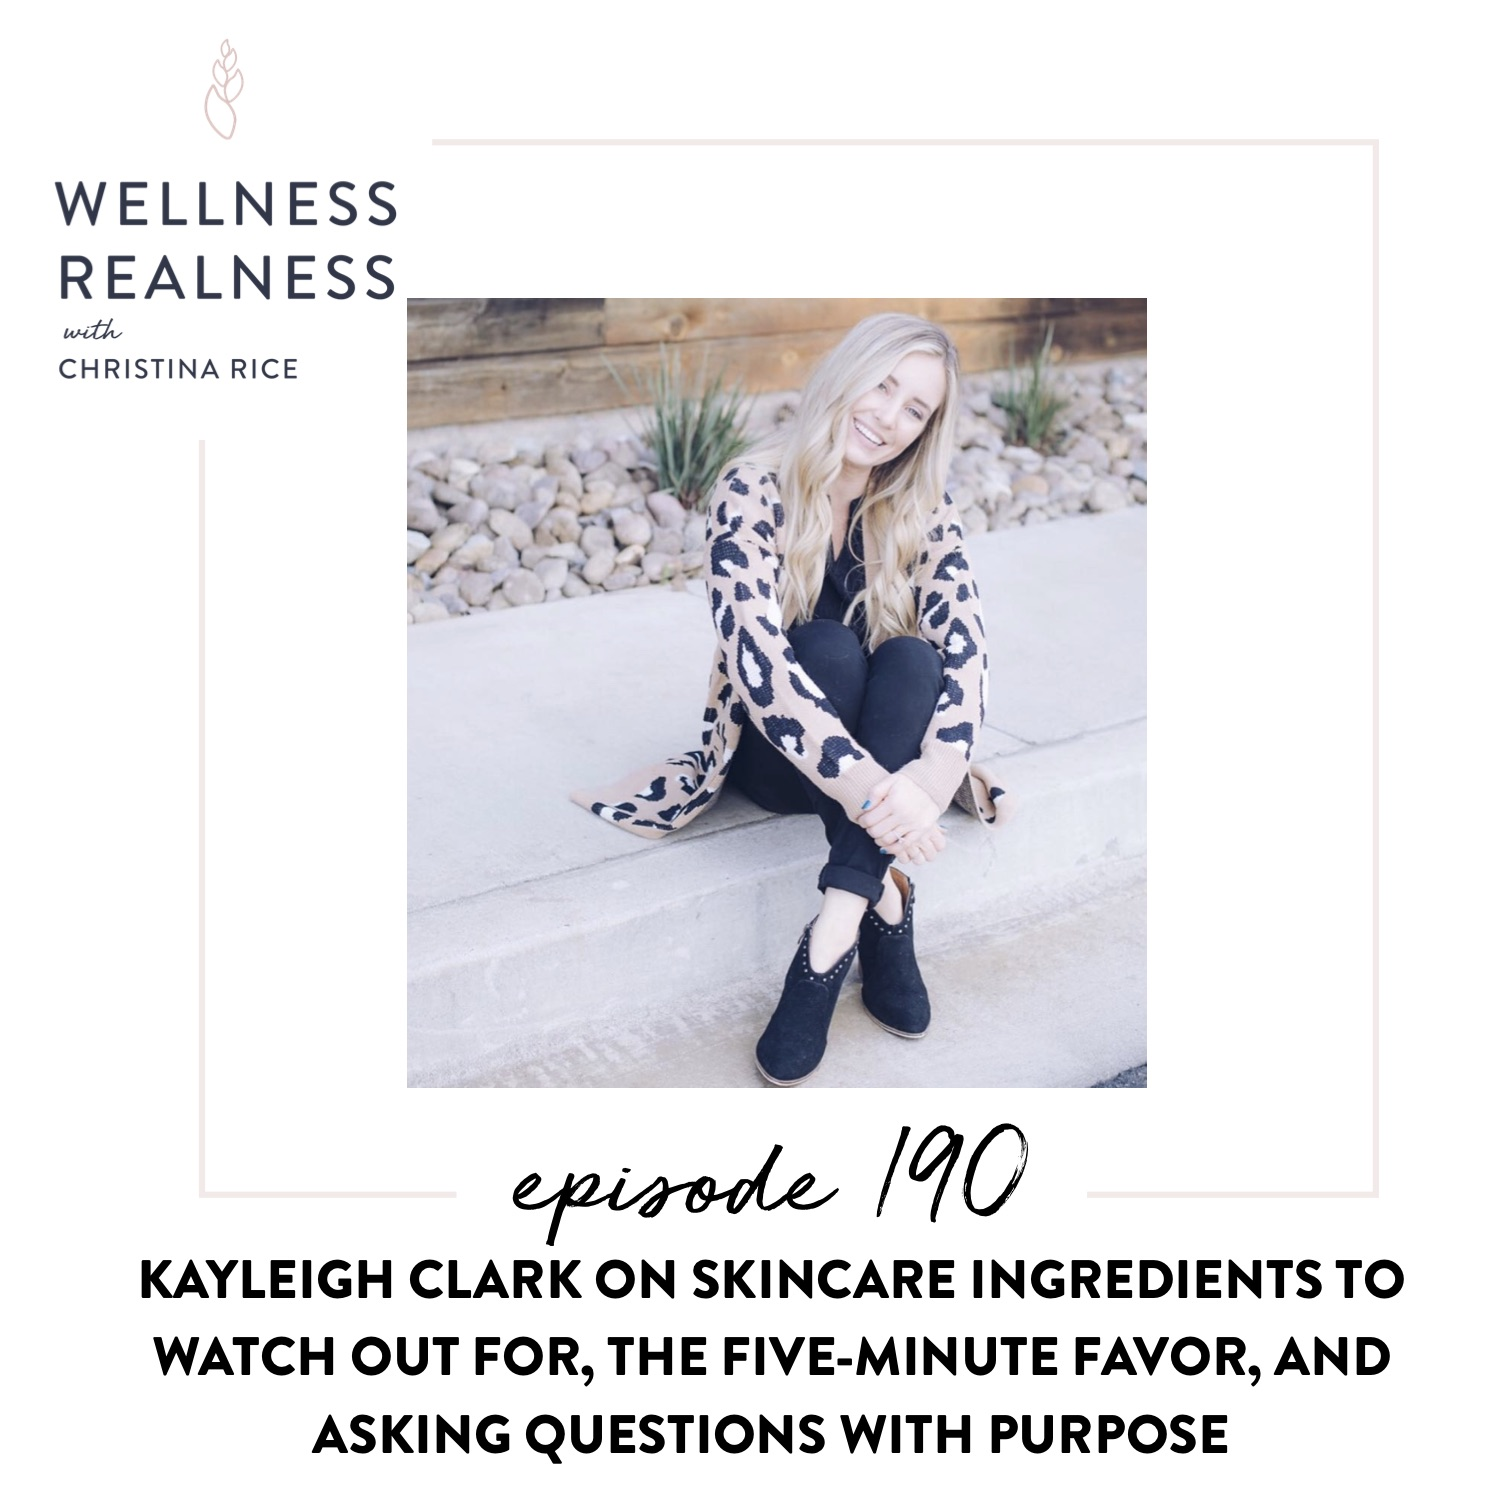 190: Kayleigh Clark on Skincare Ingredients to Watch Out For, the Five-Minute Favor, and Asking Questions with Purpose